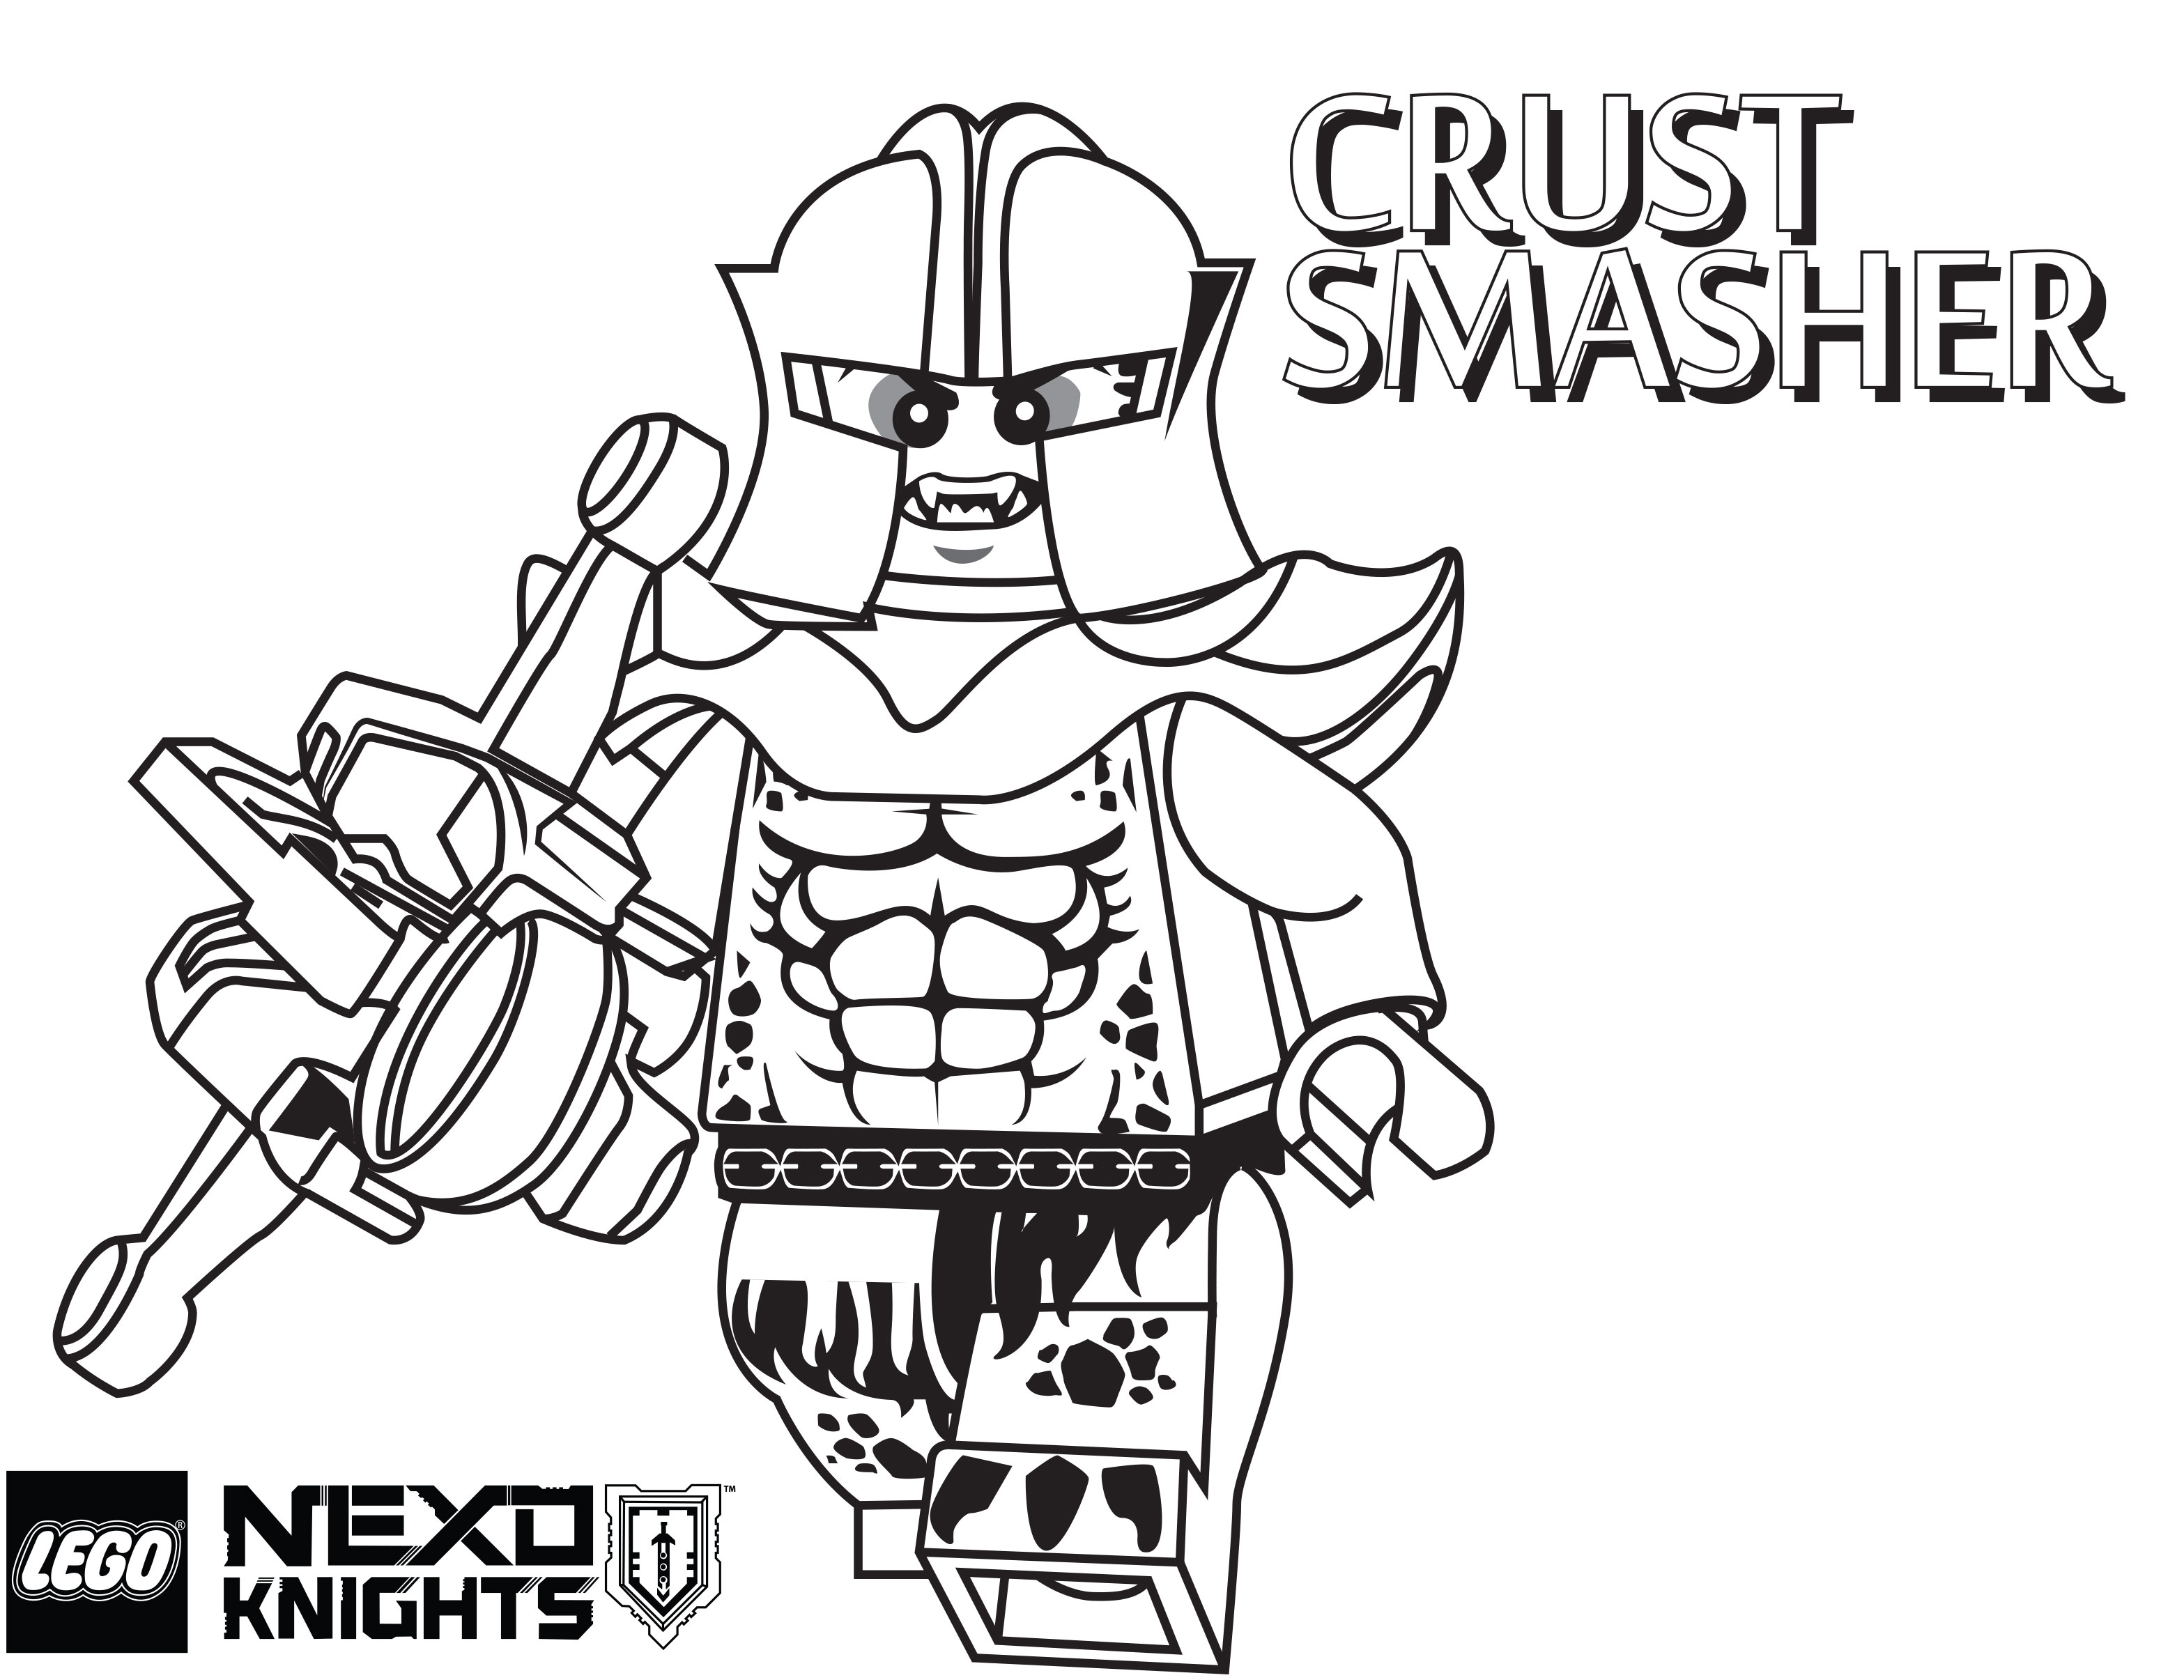 3134x2411 Lego Nexo Knights Coloring Pages Crust Smasher